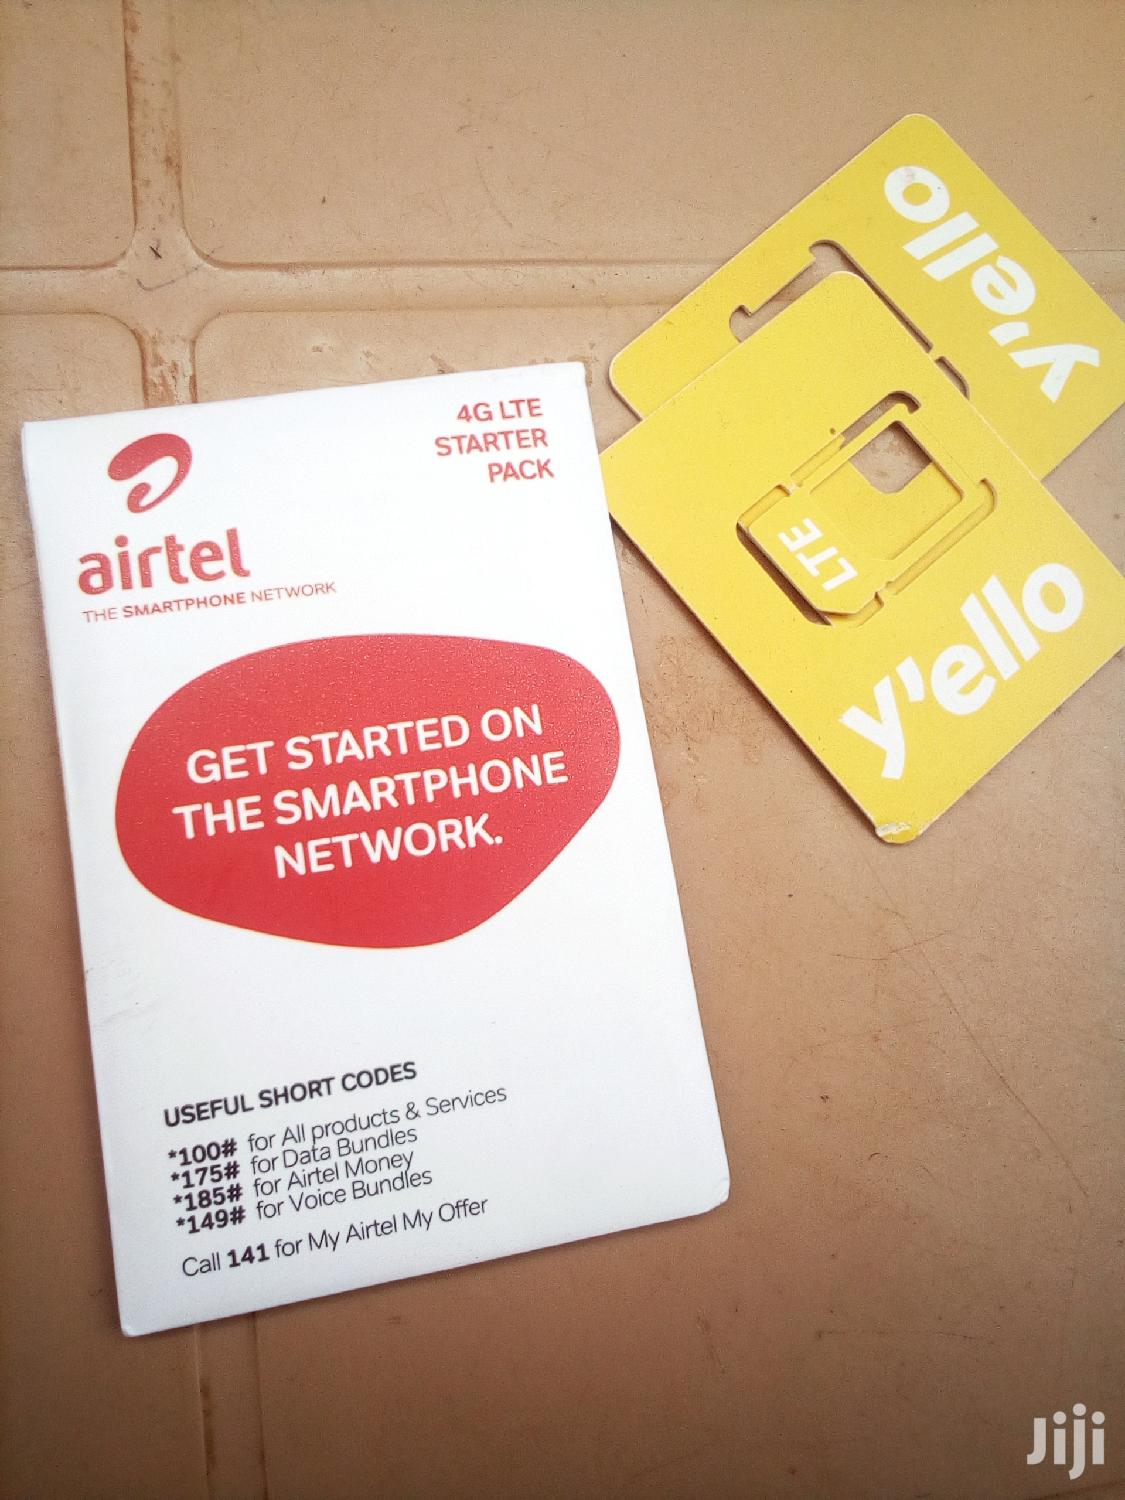 Archive: Agent Lines Airtel And Mnt